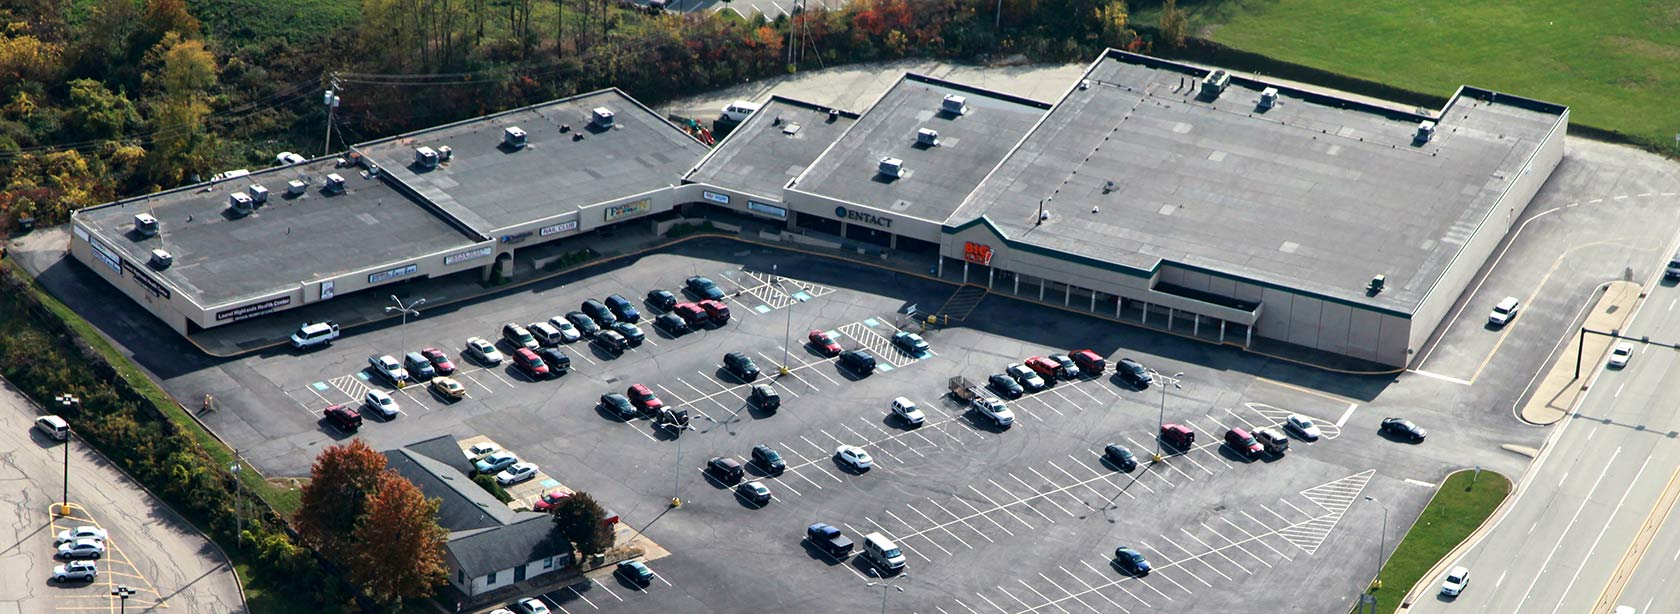 Aerial view of Unity Plaza in Latrobe, Pennsylvania owned and managed by The Leathery Company.